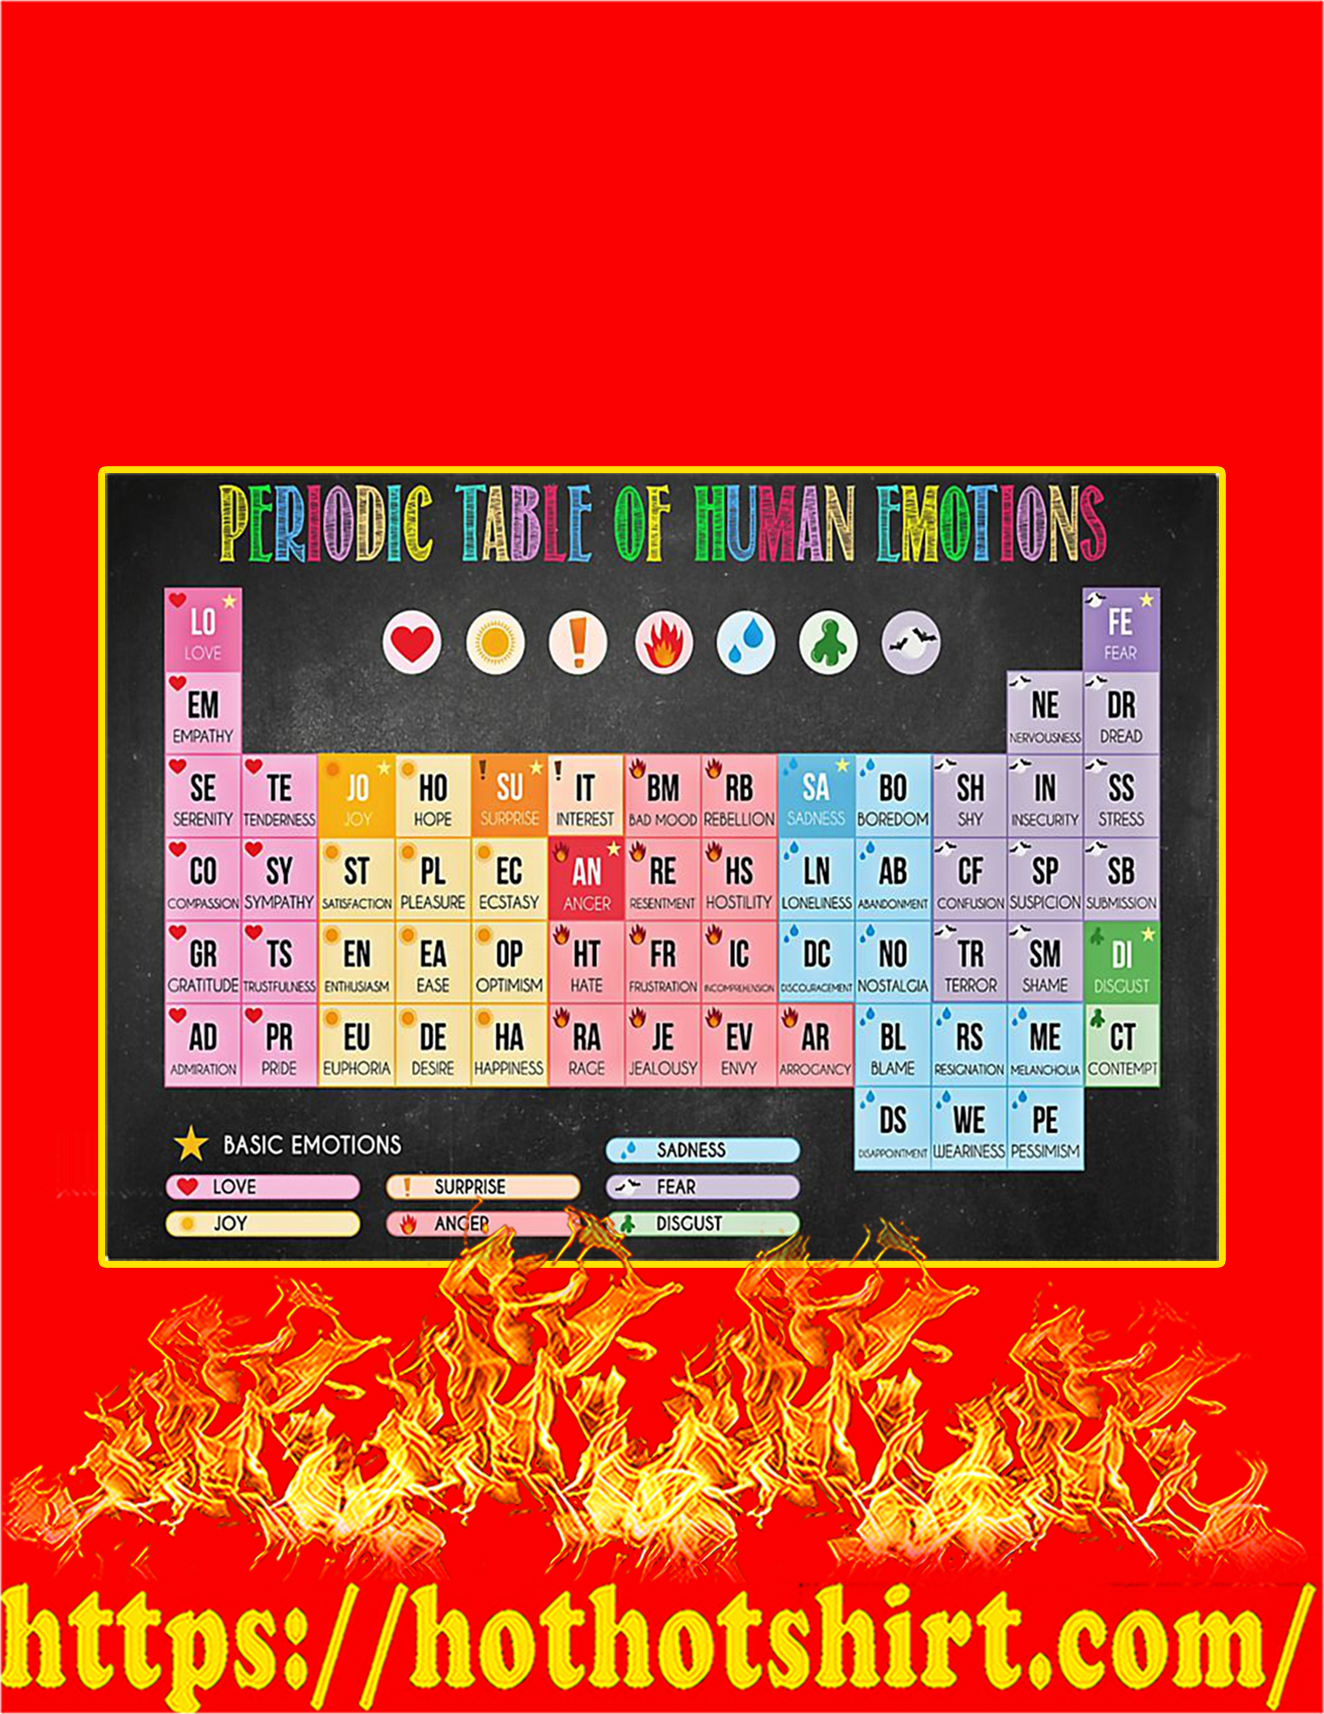 Social worker Periodic table of human emotions poster - A3